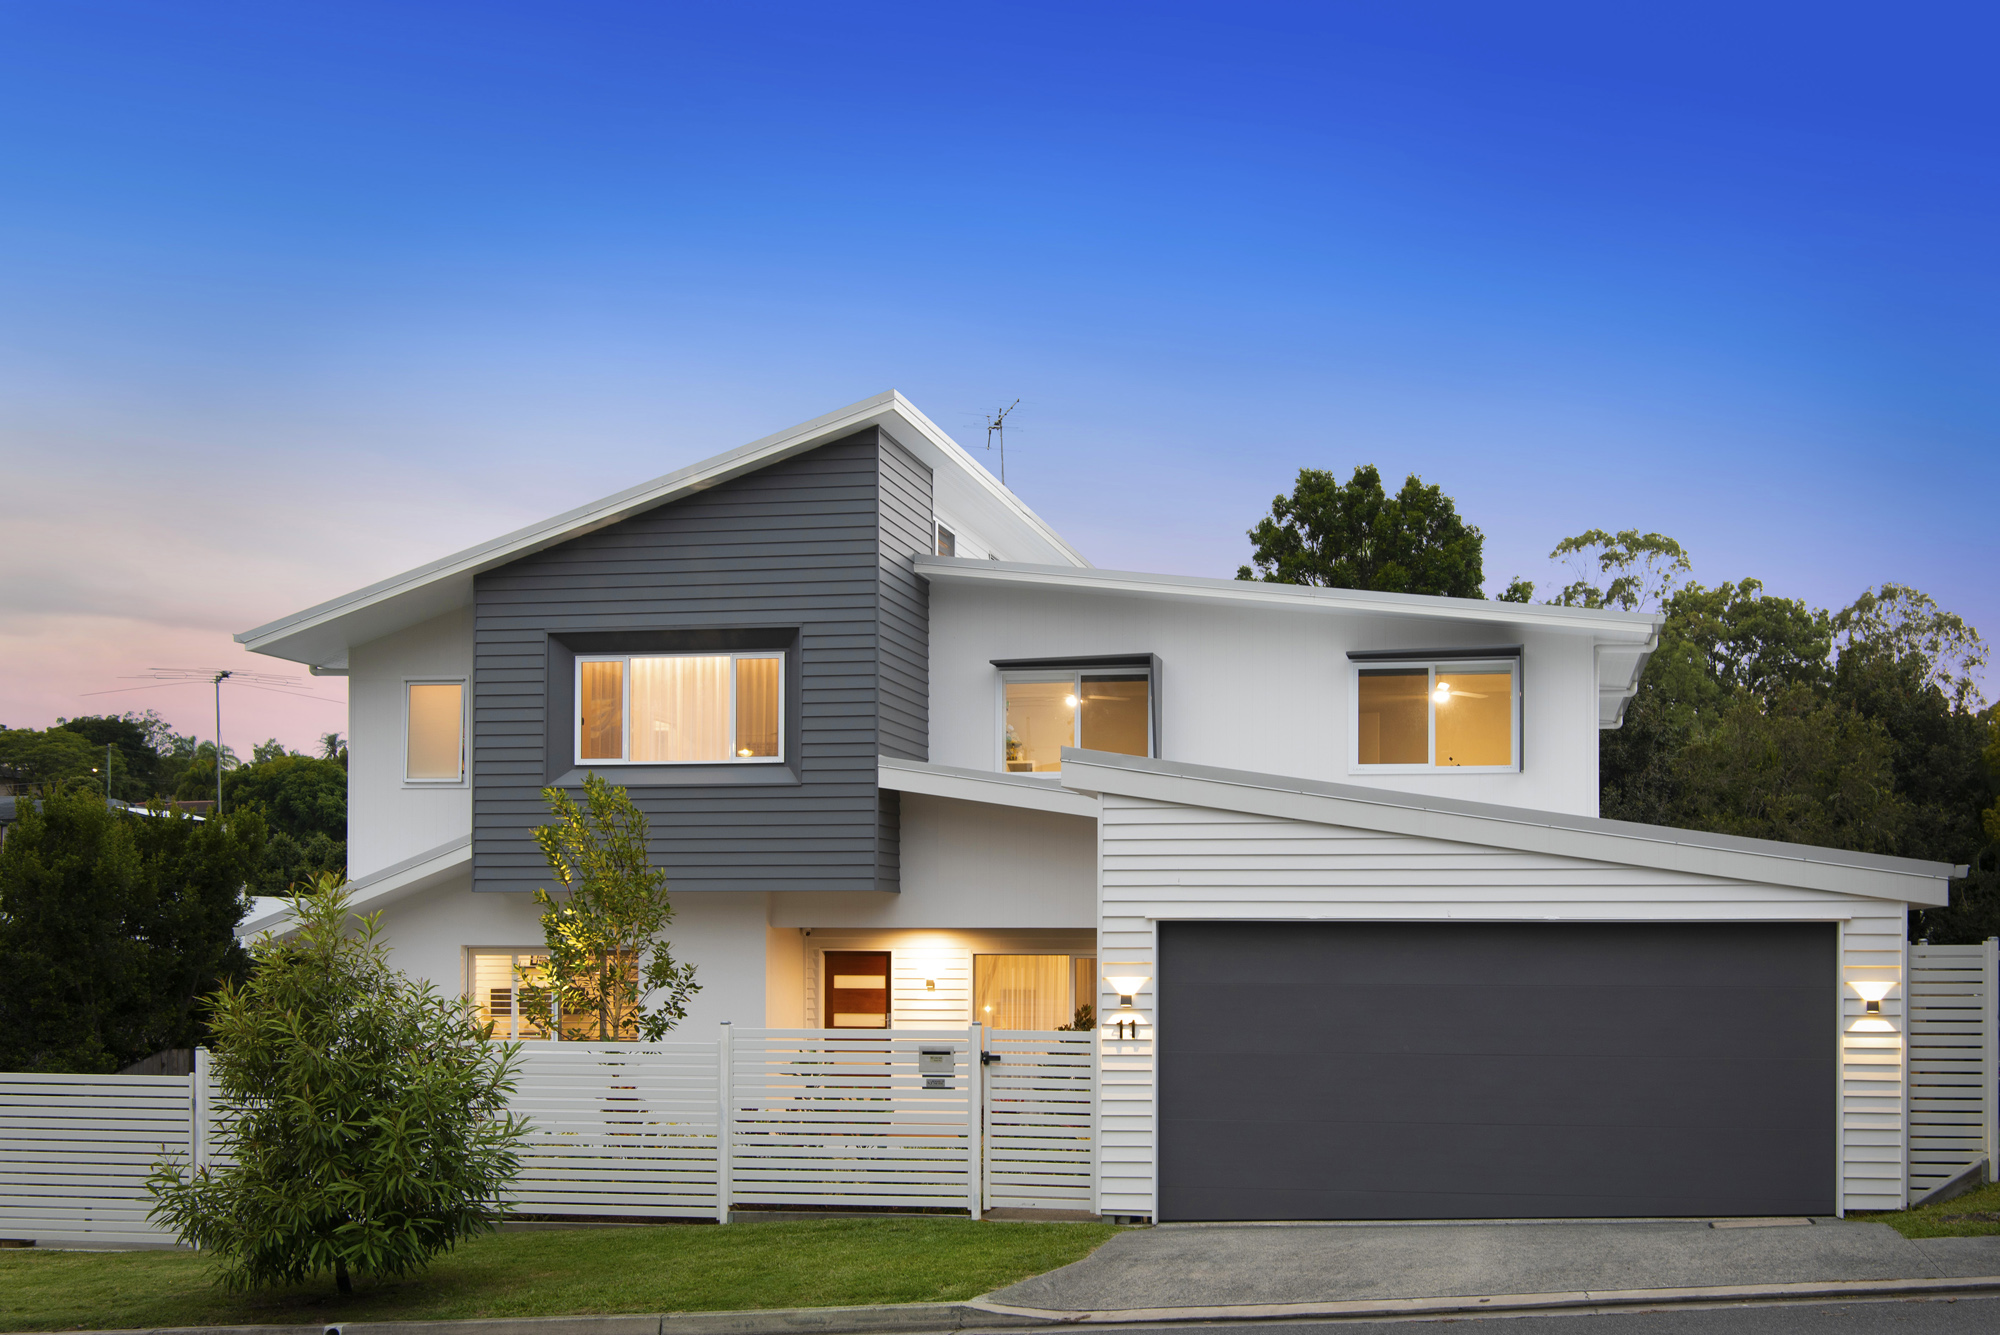 Dusk photo, lights in windows, front facade, modern second storey extension